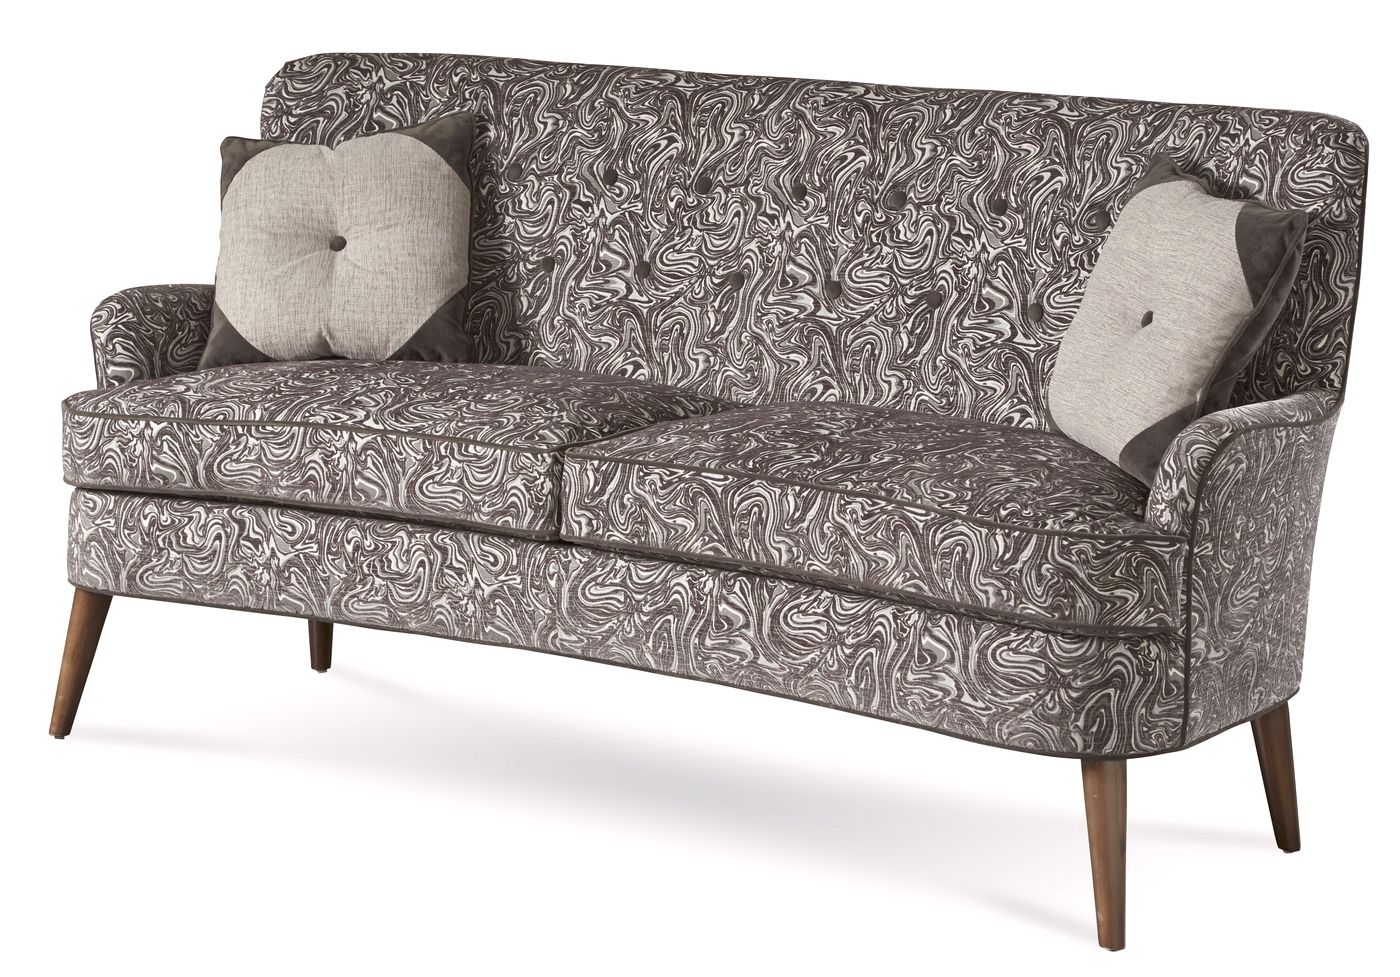 charcoal gray tufted sofa white leather bed sale patterned eclectic shop factory direct